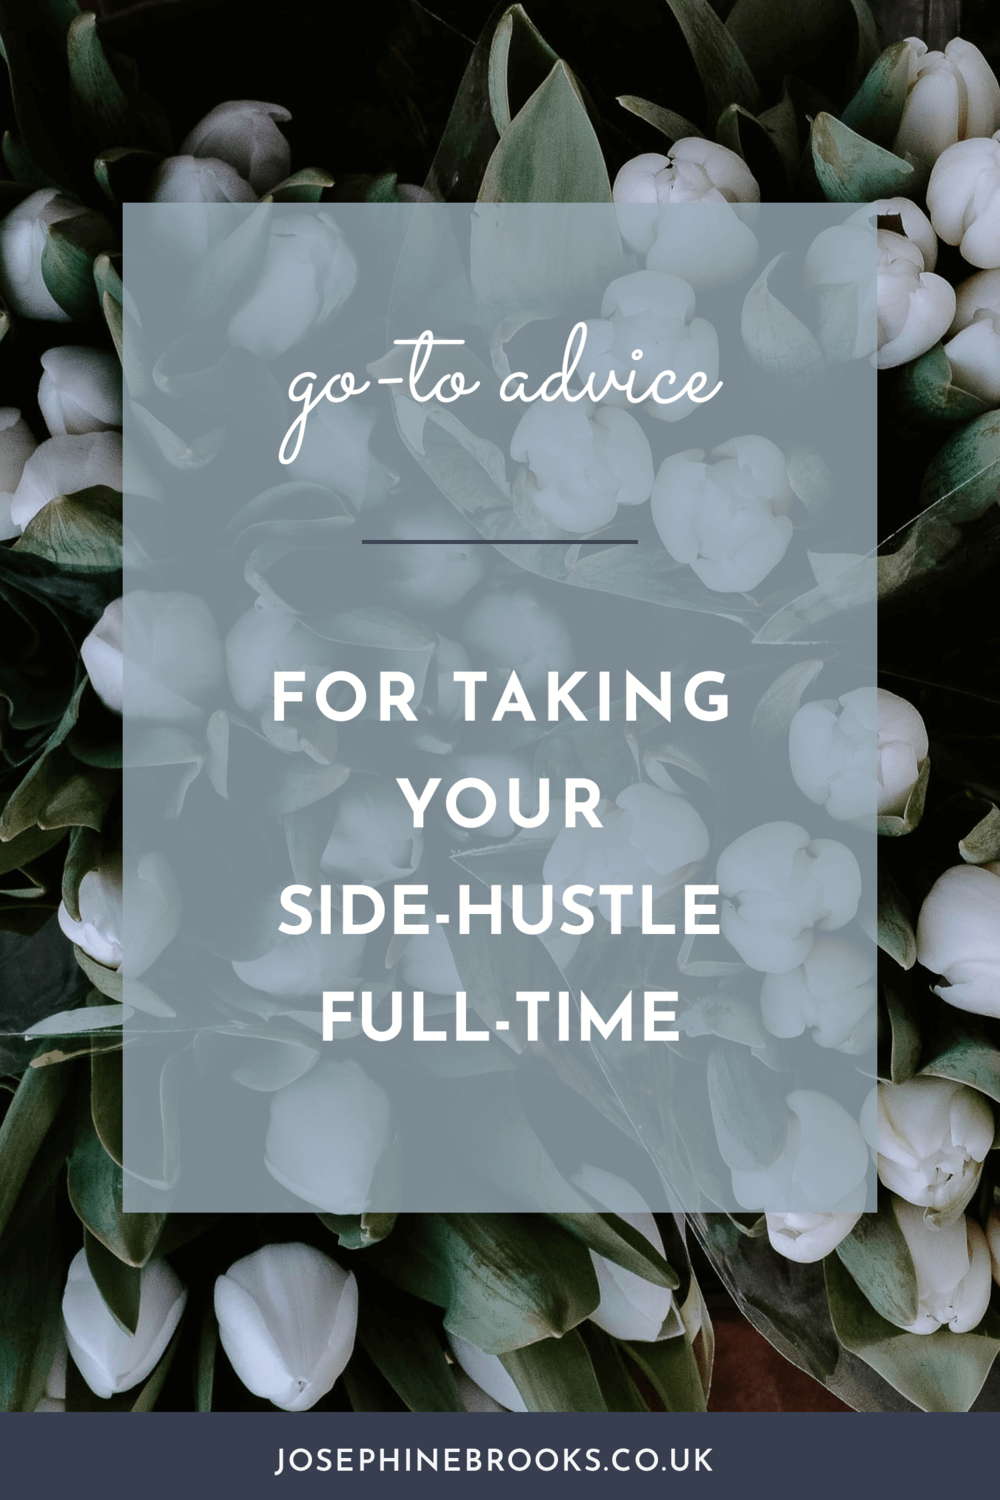 Go-to advice for taking your side hustle to full time